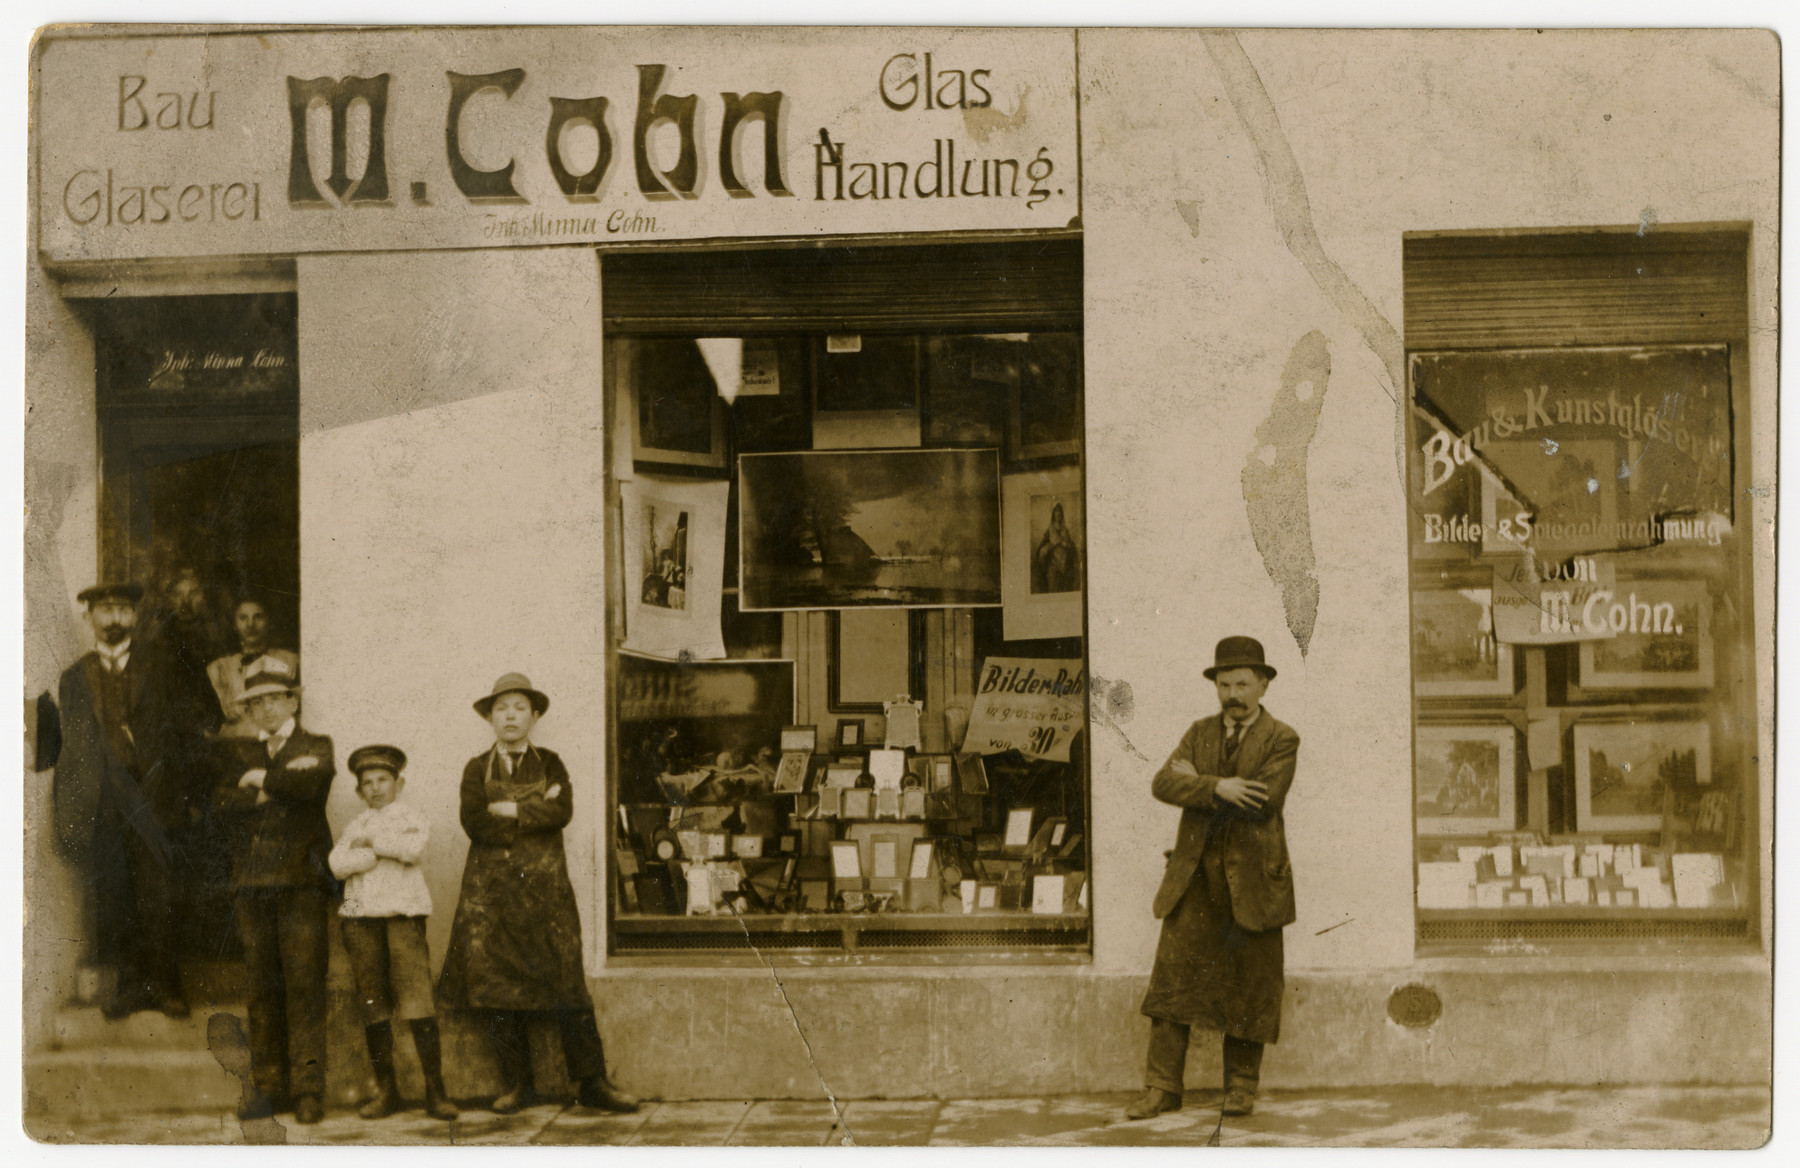 A group of men pose in front of the store belonging to Martin Cohn (grandfather of the donor).